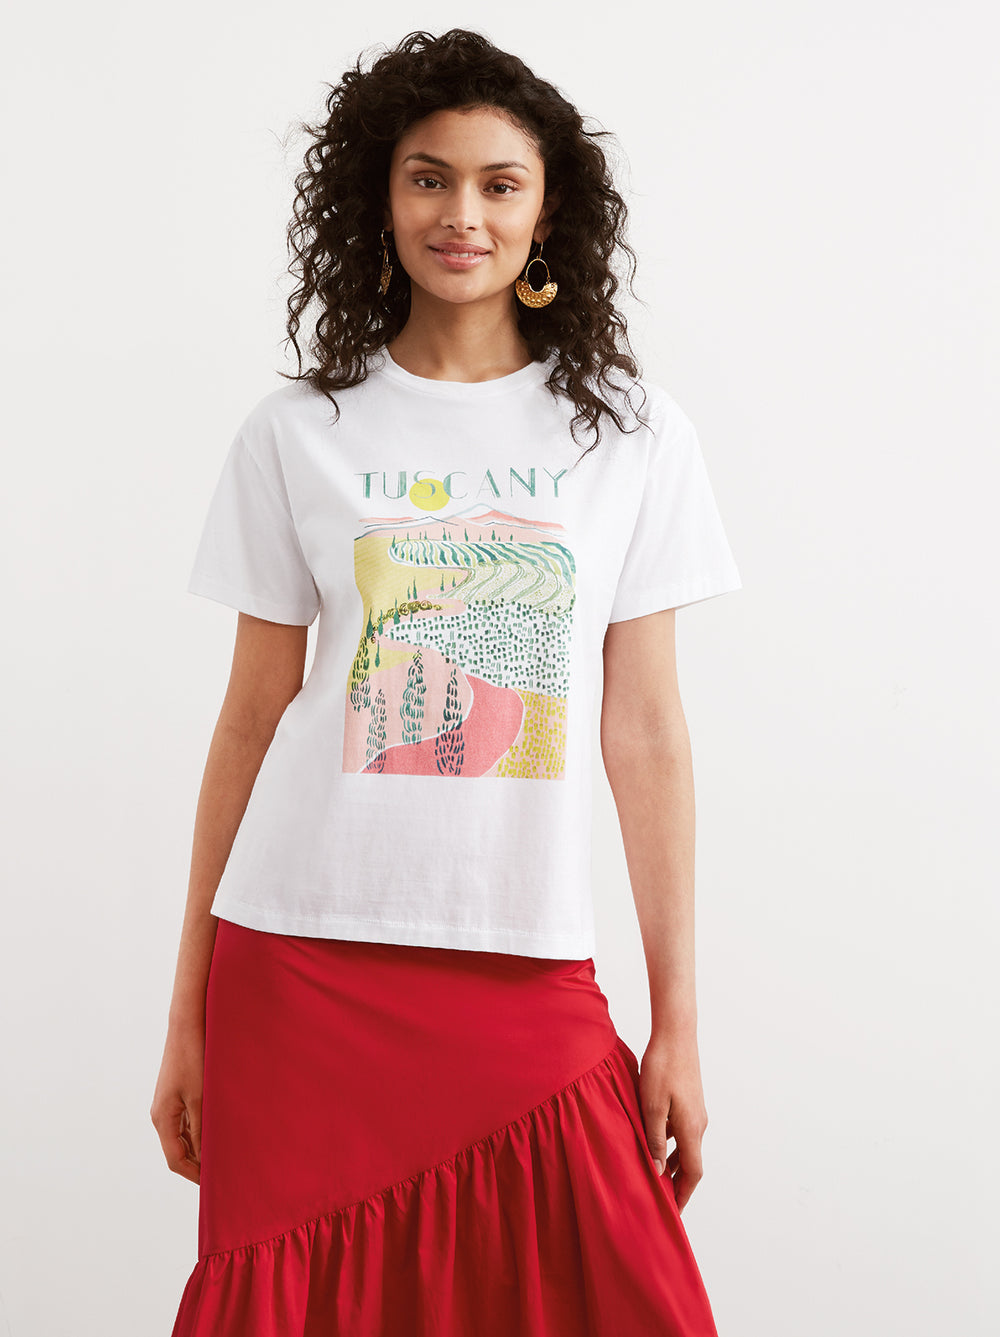 Tuscany White Cotton Printed Crew Neck T-shirt by KITRI Studio